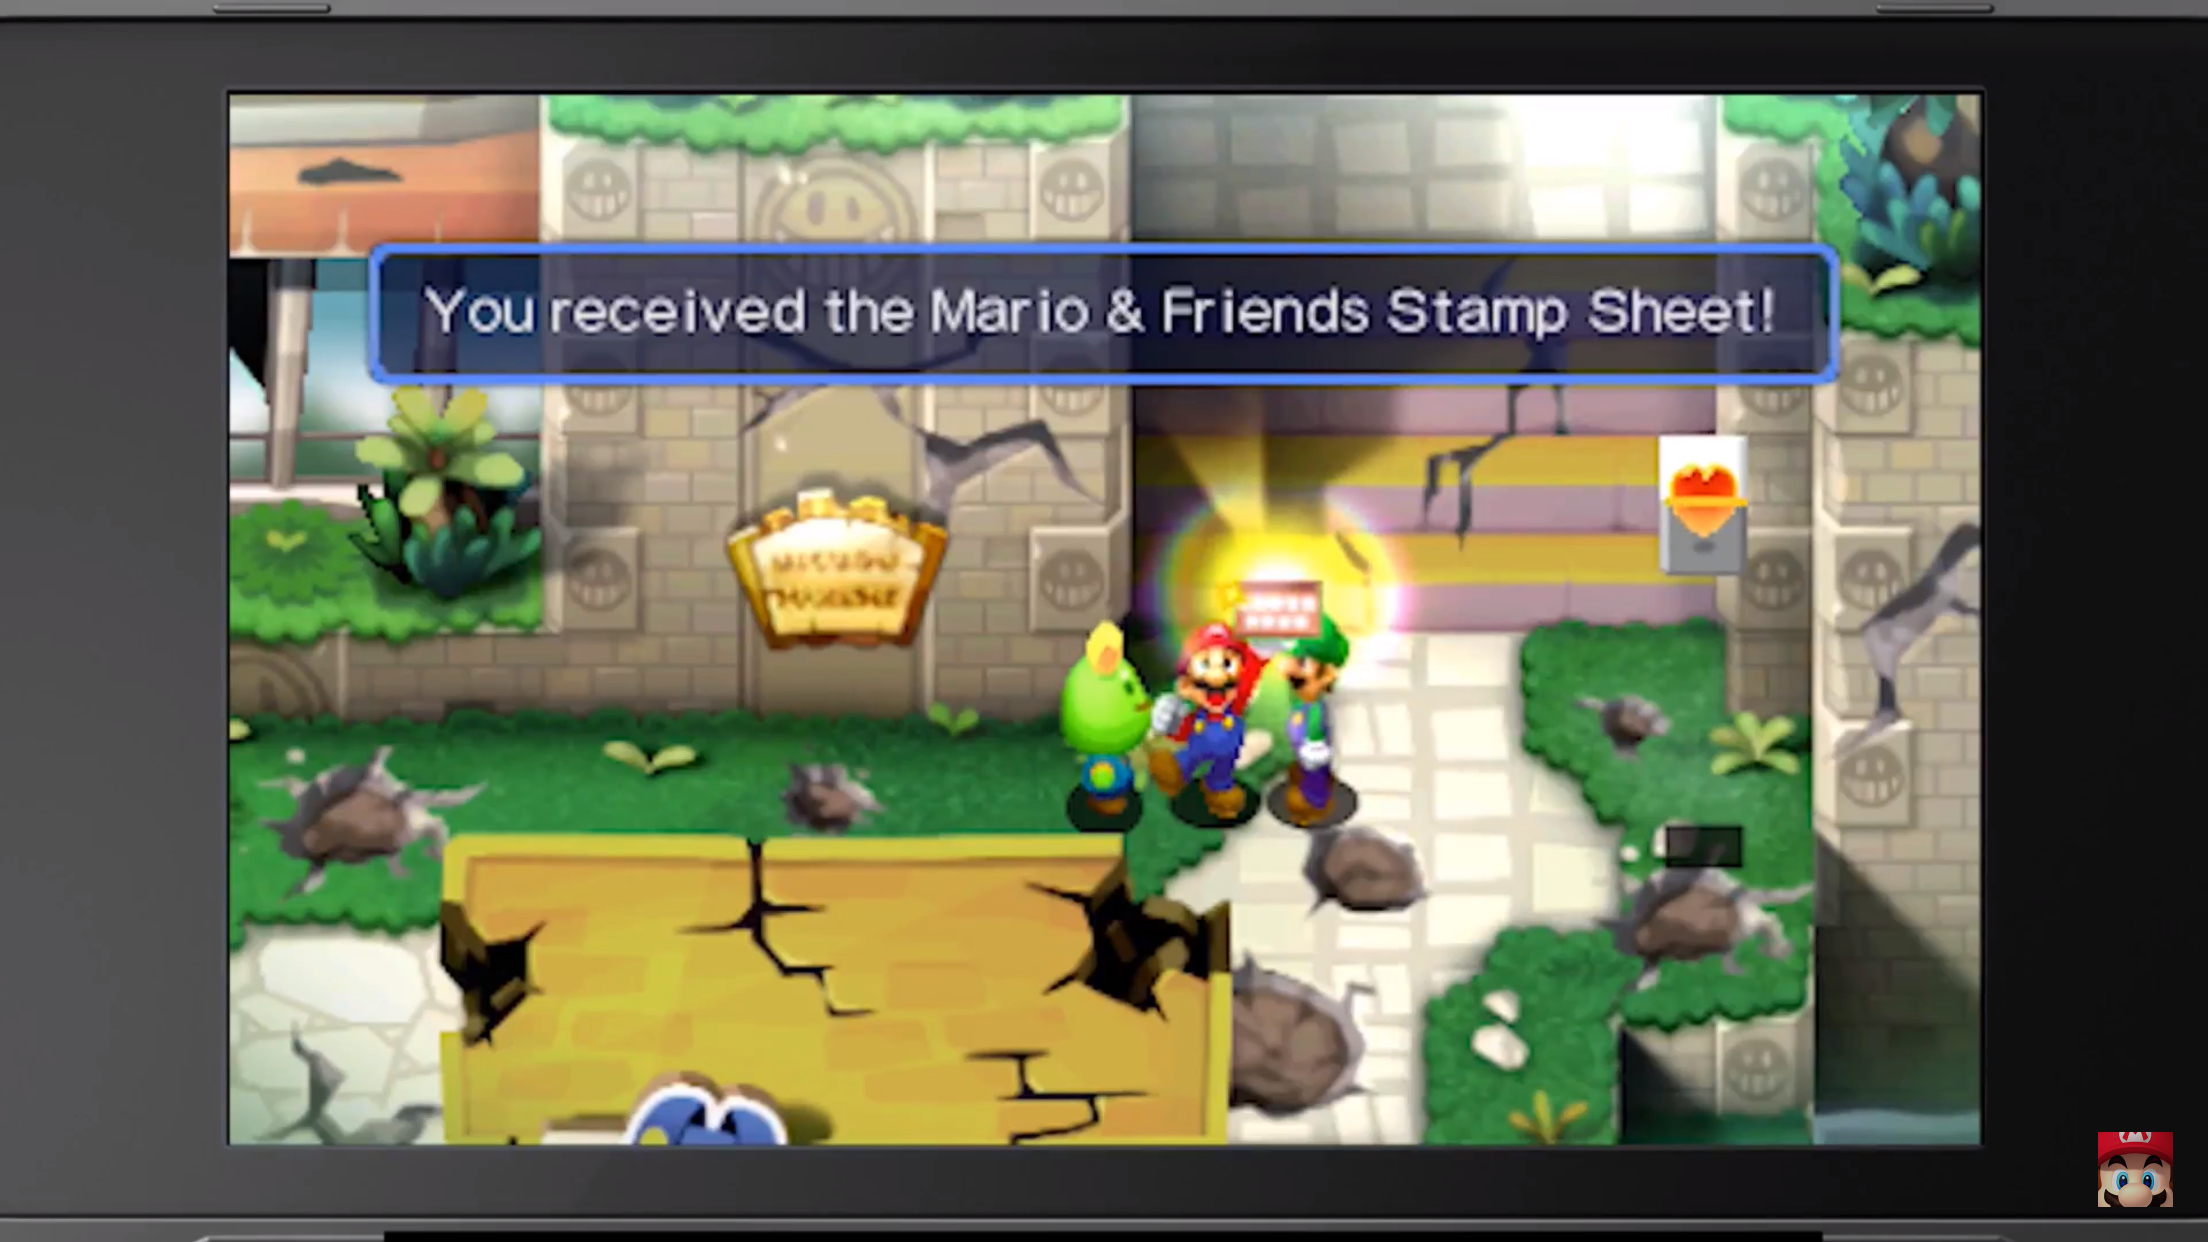 Nintendo direct full september 13 recap shacknews the first of the mario luigi games is getting ready to hit nintendo 3ds mario luigi superstar saga is the game boy advance classic just as players ccuart Images